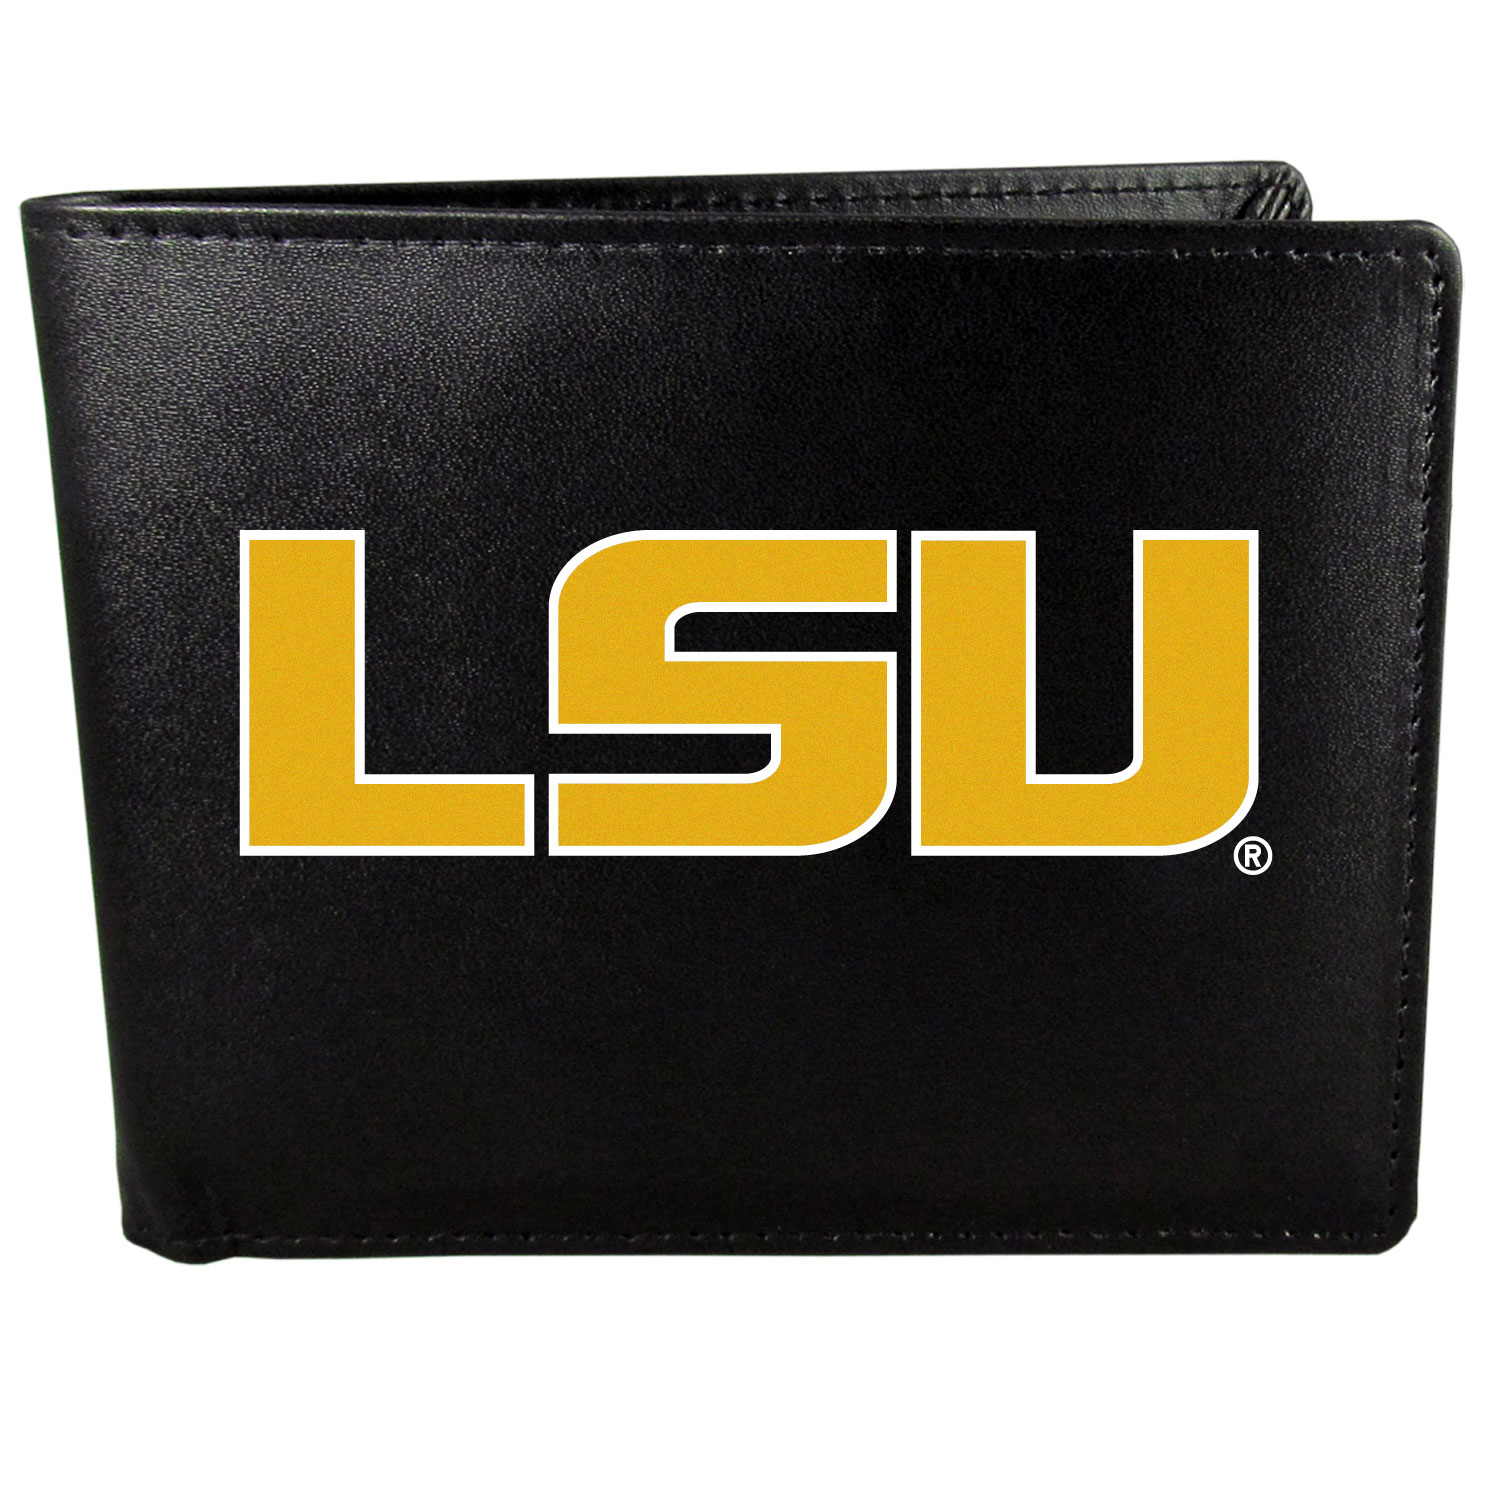 LSU Tigers Leather Bi-fold Wallet, Large Logo - Our classic fine leather bi-fold wallet is meticulously crafted with genuine leather that will age beautifully so you will have a quality wallet for years to come. The wallet opens to a large, billfold pocket and numerous credit card slots and has a convenient windowed ID slot. The front of the wallet features an extra large LSU Tigers printed logo.